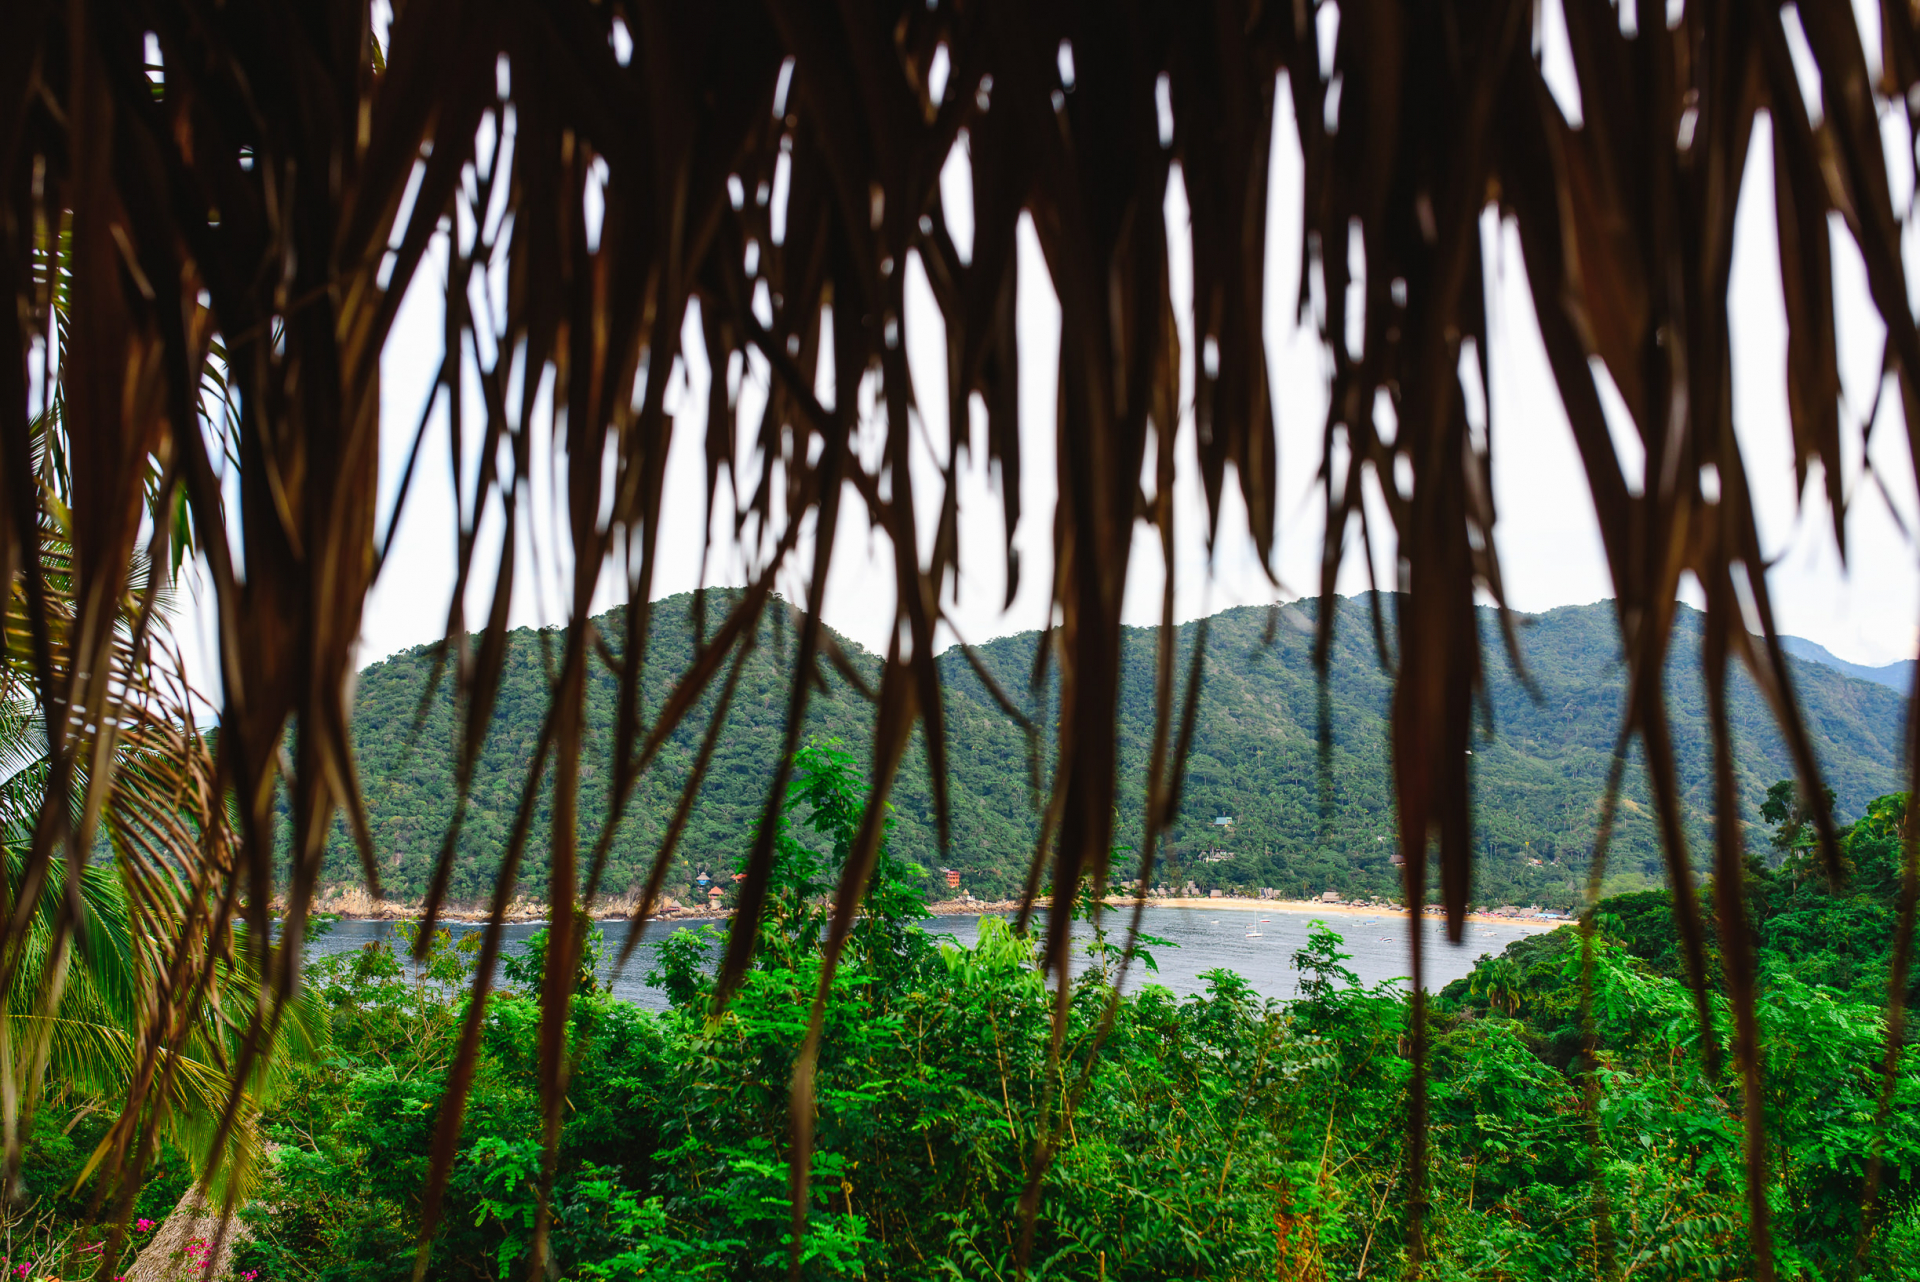 Yelapa, Mexico Wedding Elopement Photography | Peeking out from beneath palm fronds is a beautiful view of the fishing village, Yelapa, from Verana